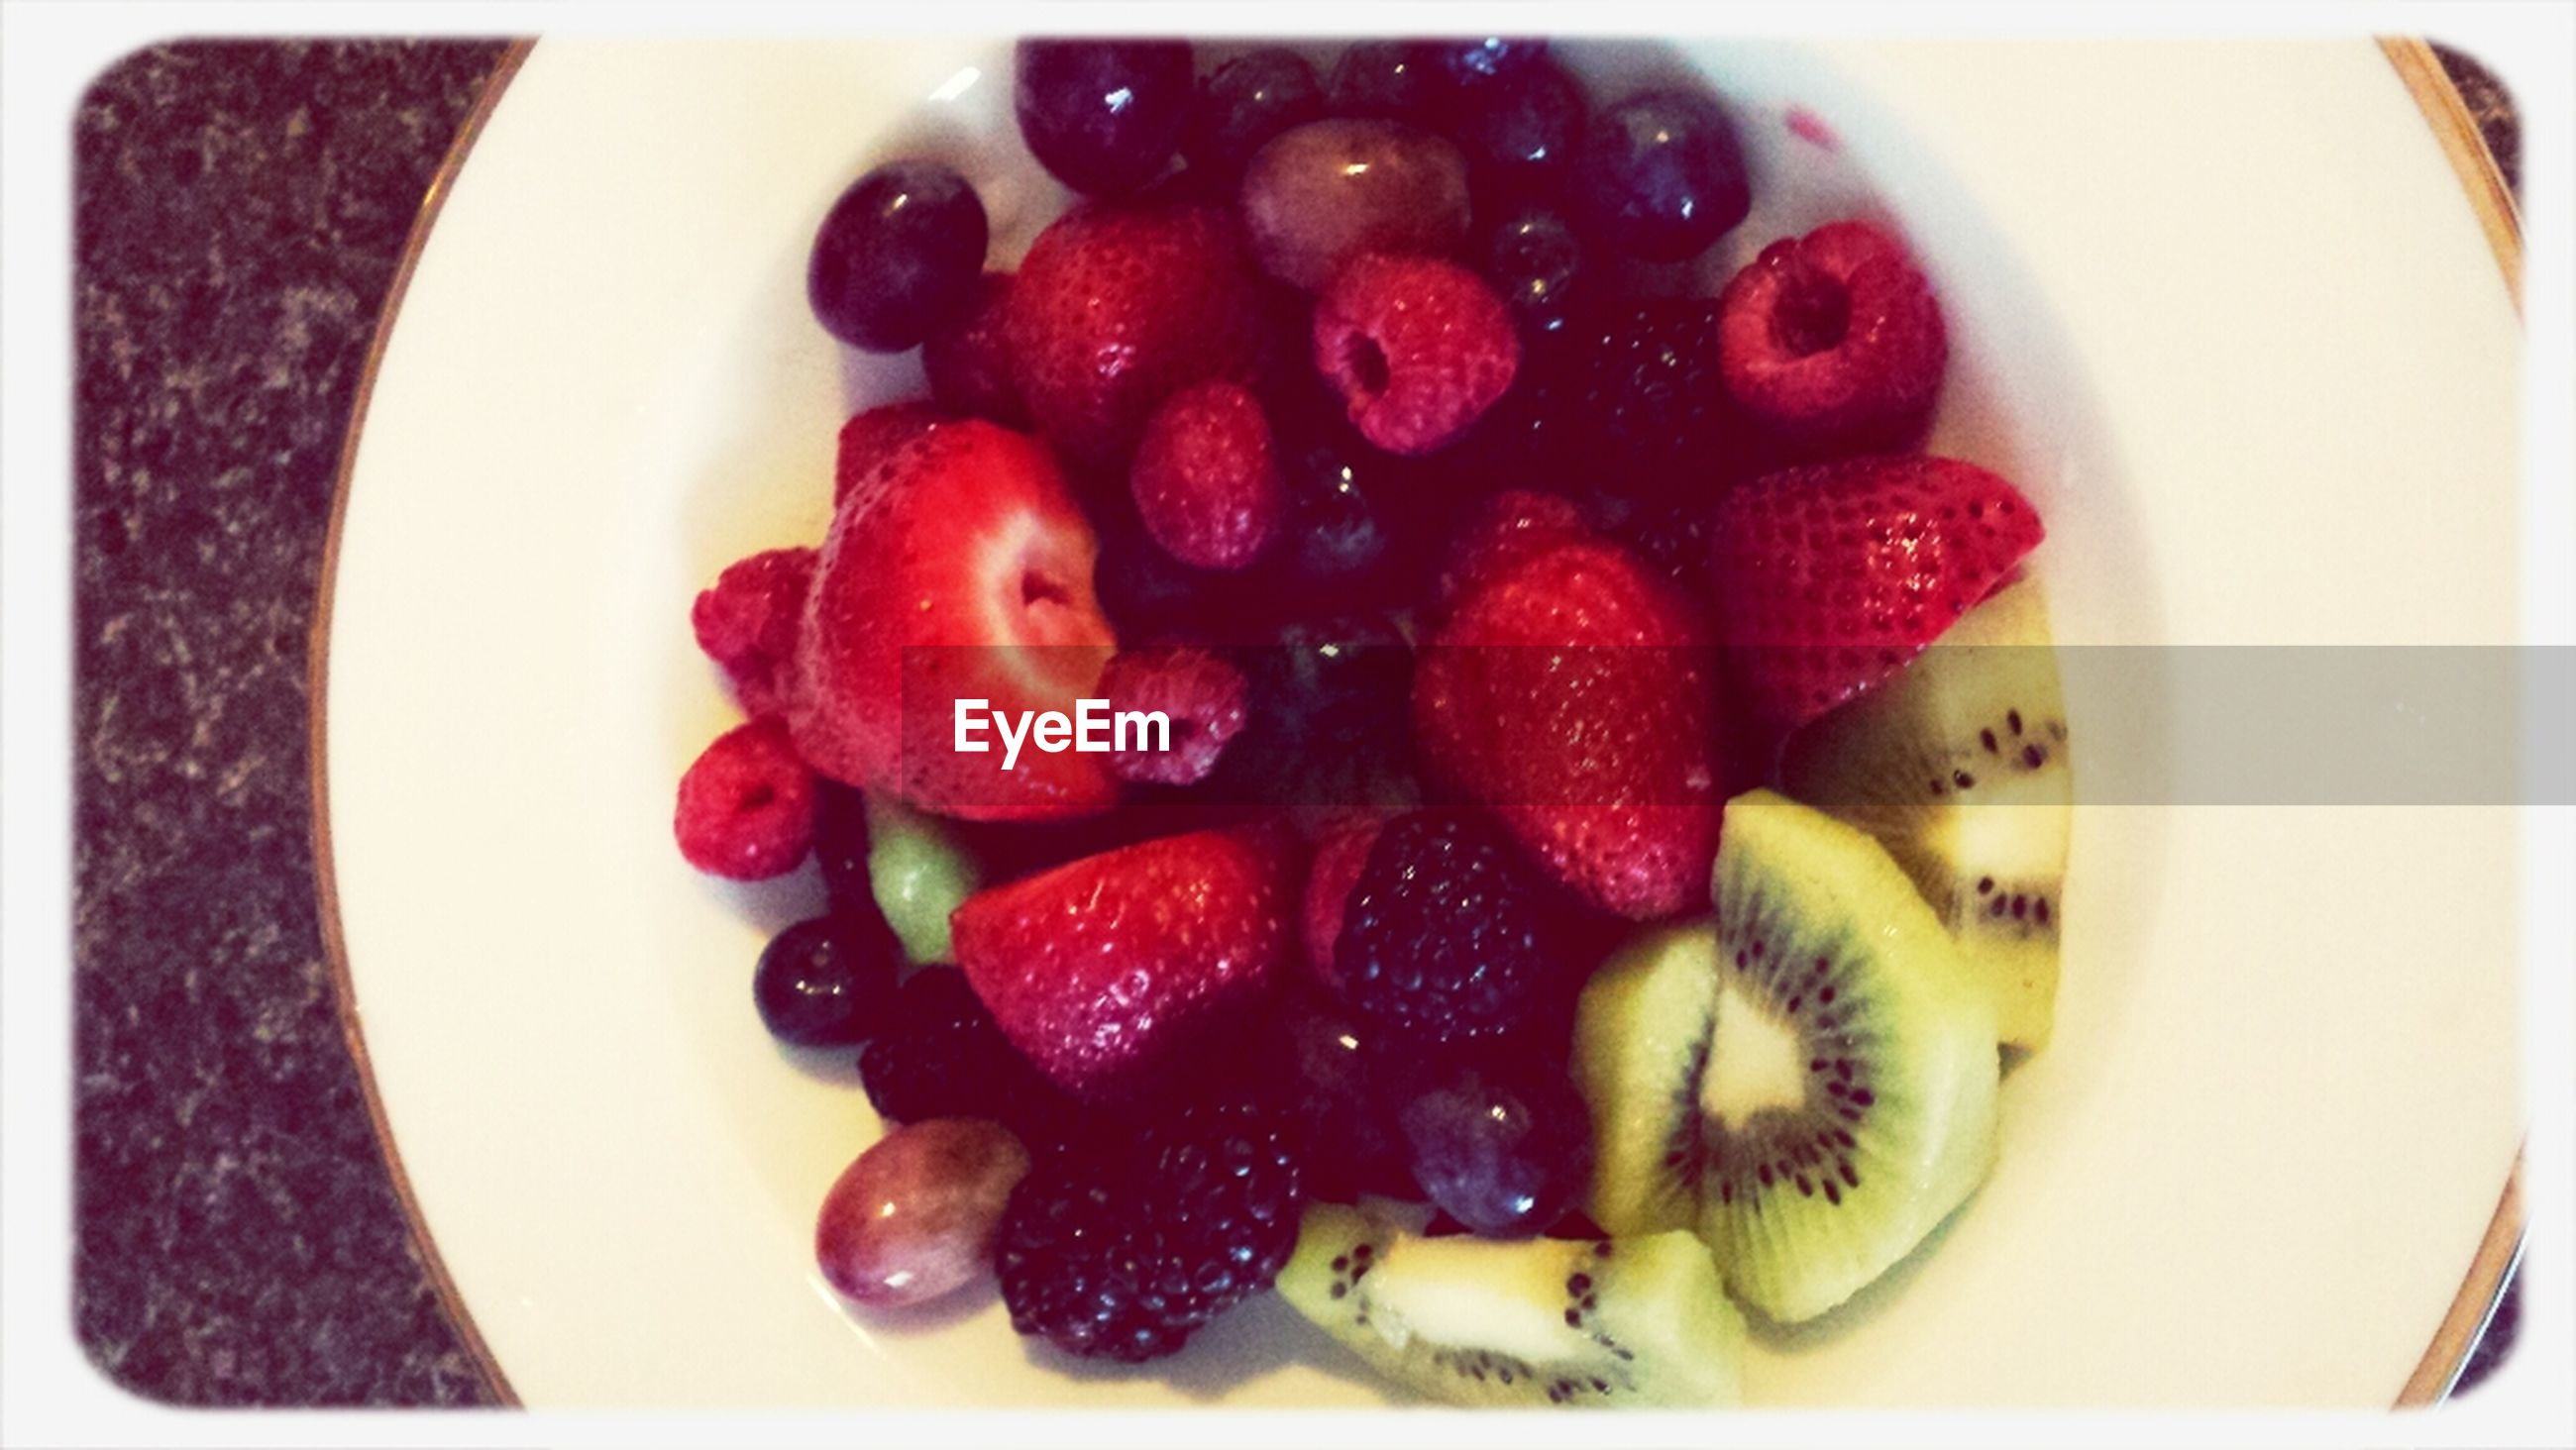 food and drink, food, freshness, fruit, indoors, healthy eating, strawberry, sweet food, transfer print, plate, ready-to-eat, still life, berry fruit, close-up, raspberry, high angle view, dessert, bowl, red, indulgence